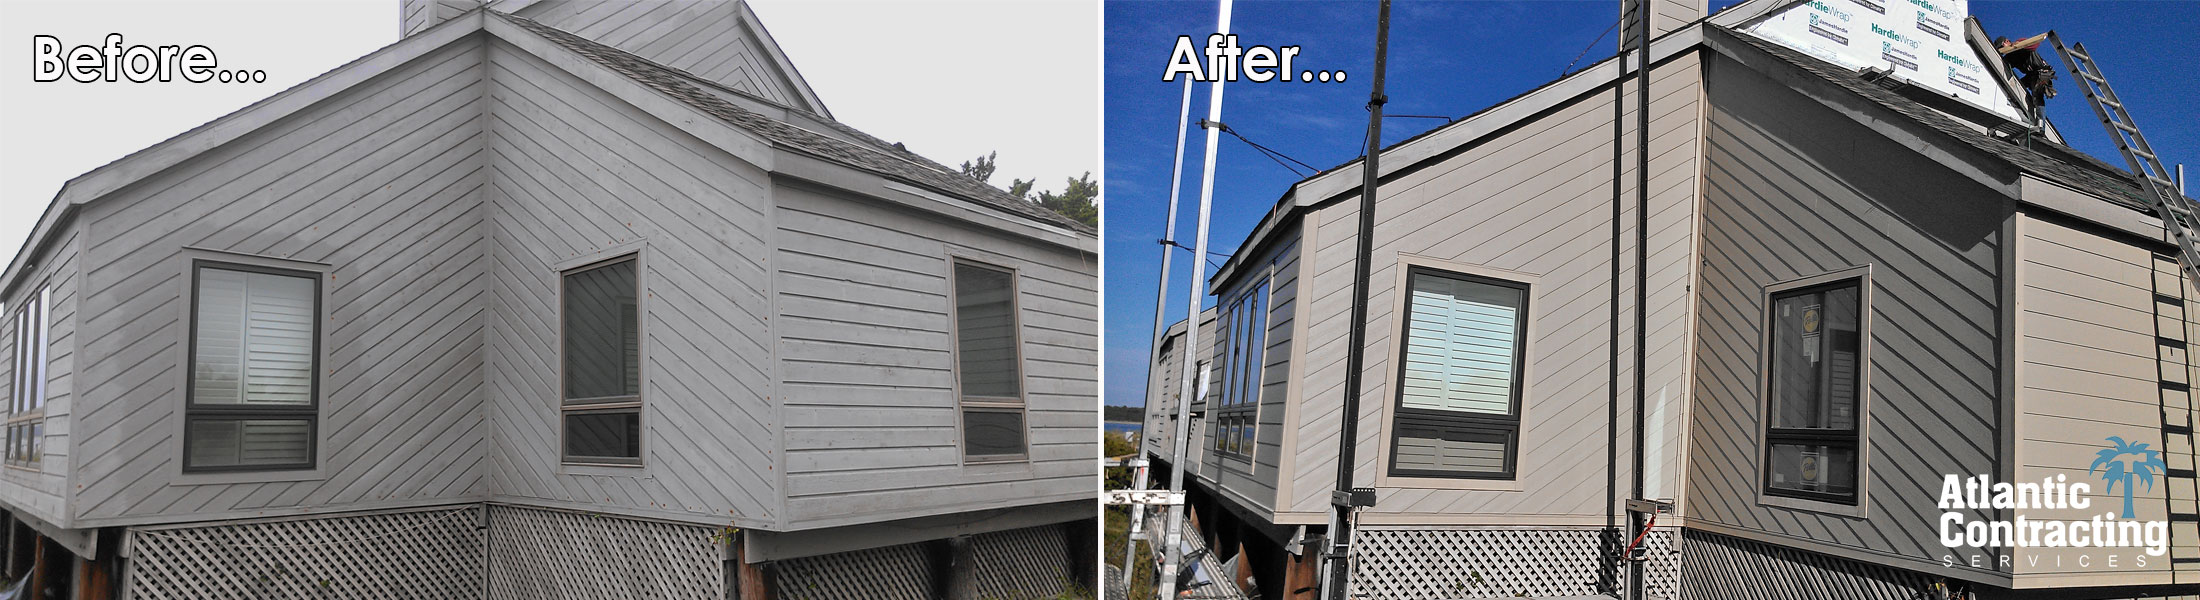 Seabrook Island Siding Contractors Installed James